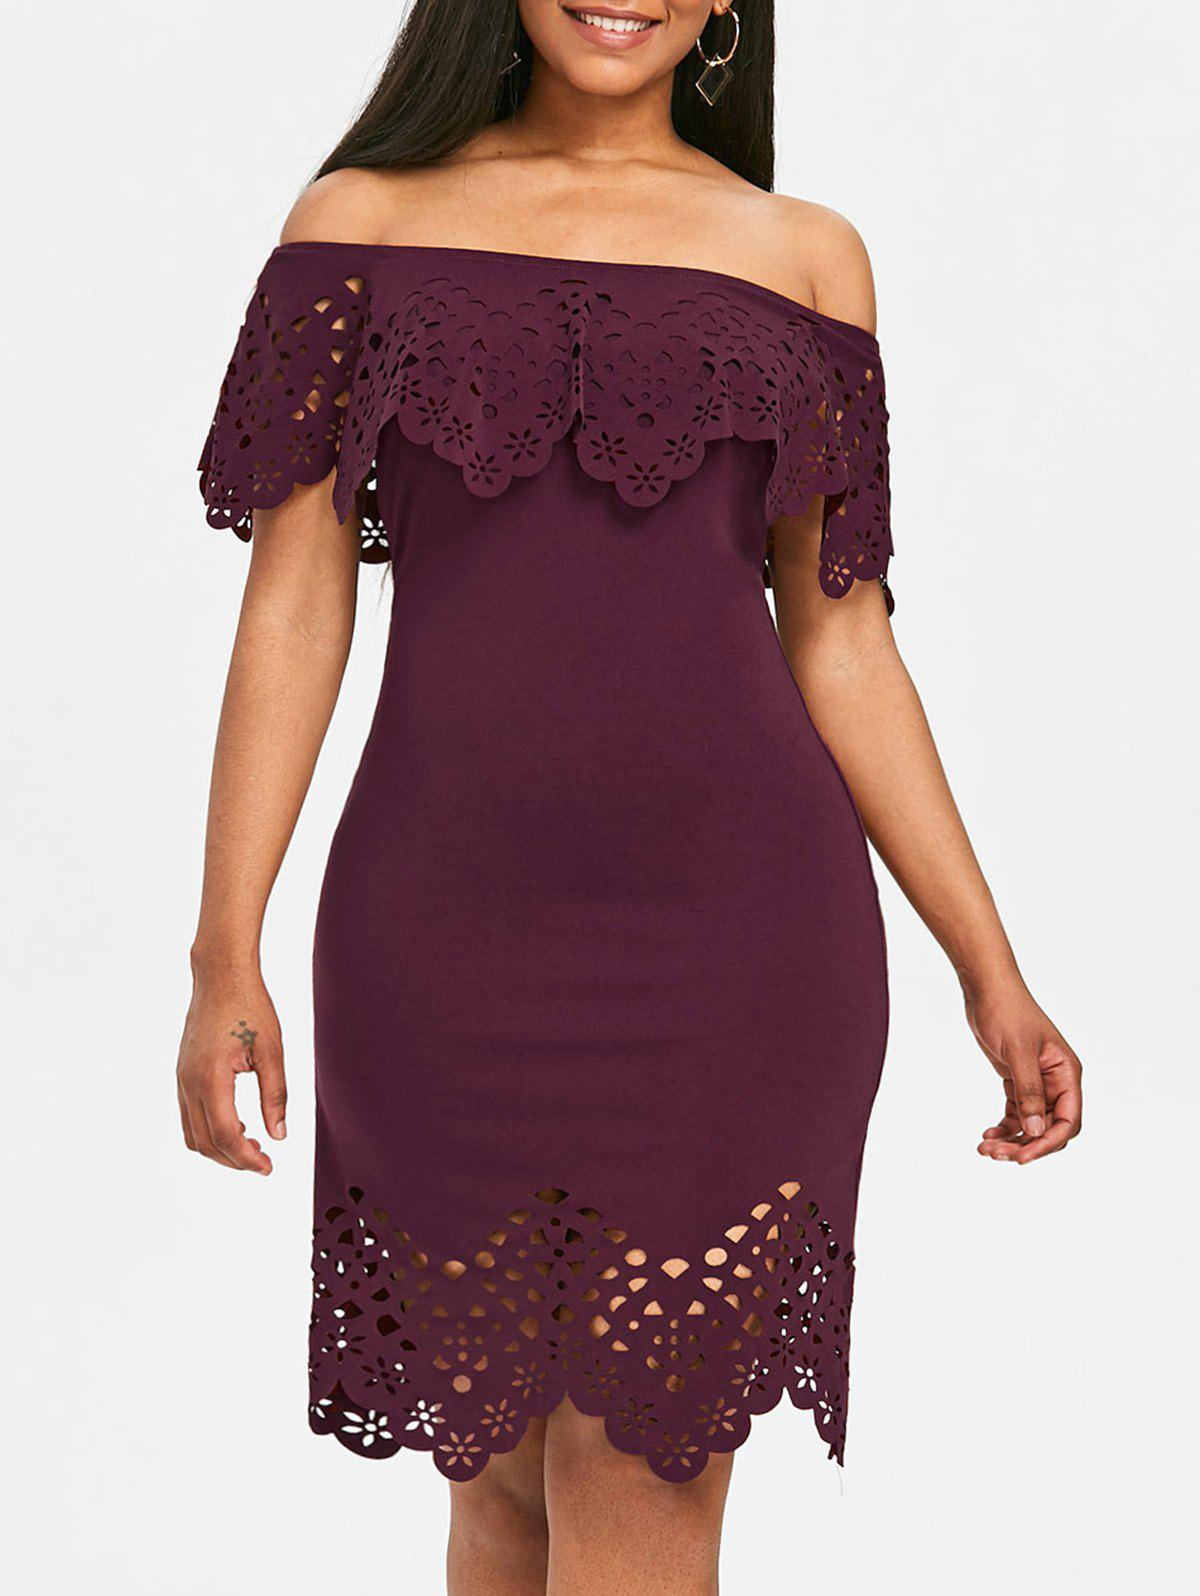 Multiway Hollow Out Dress multiway